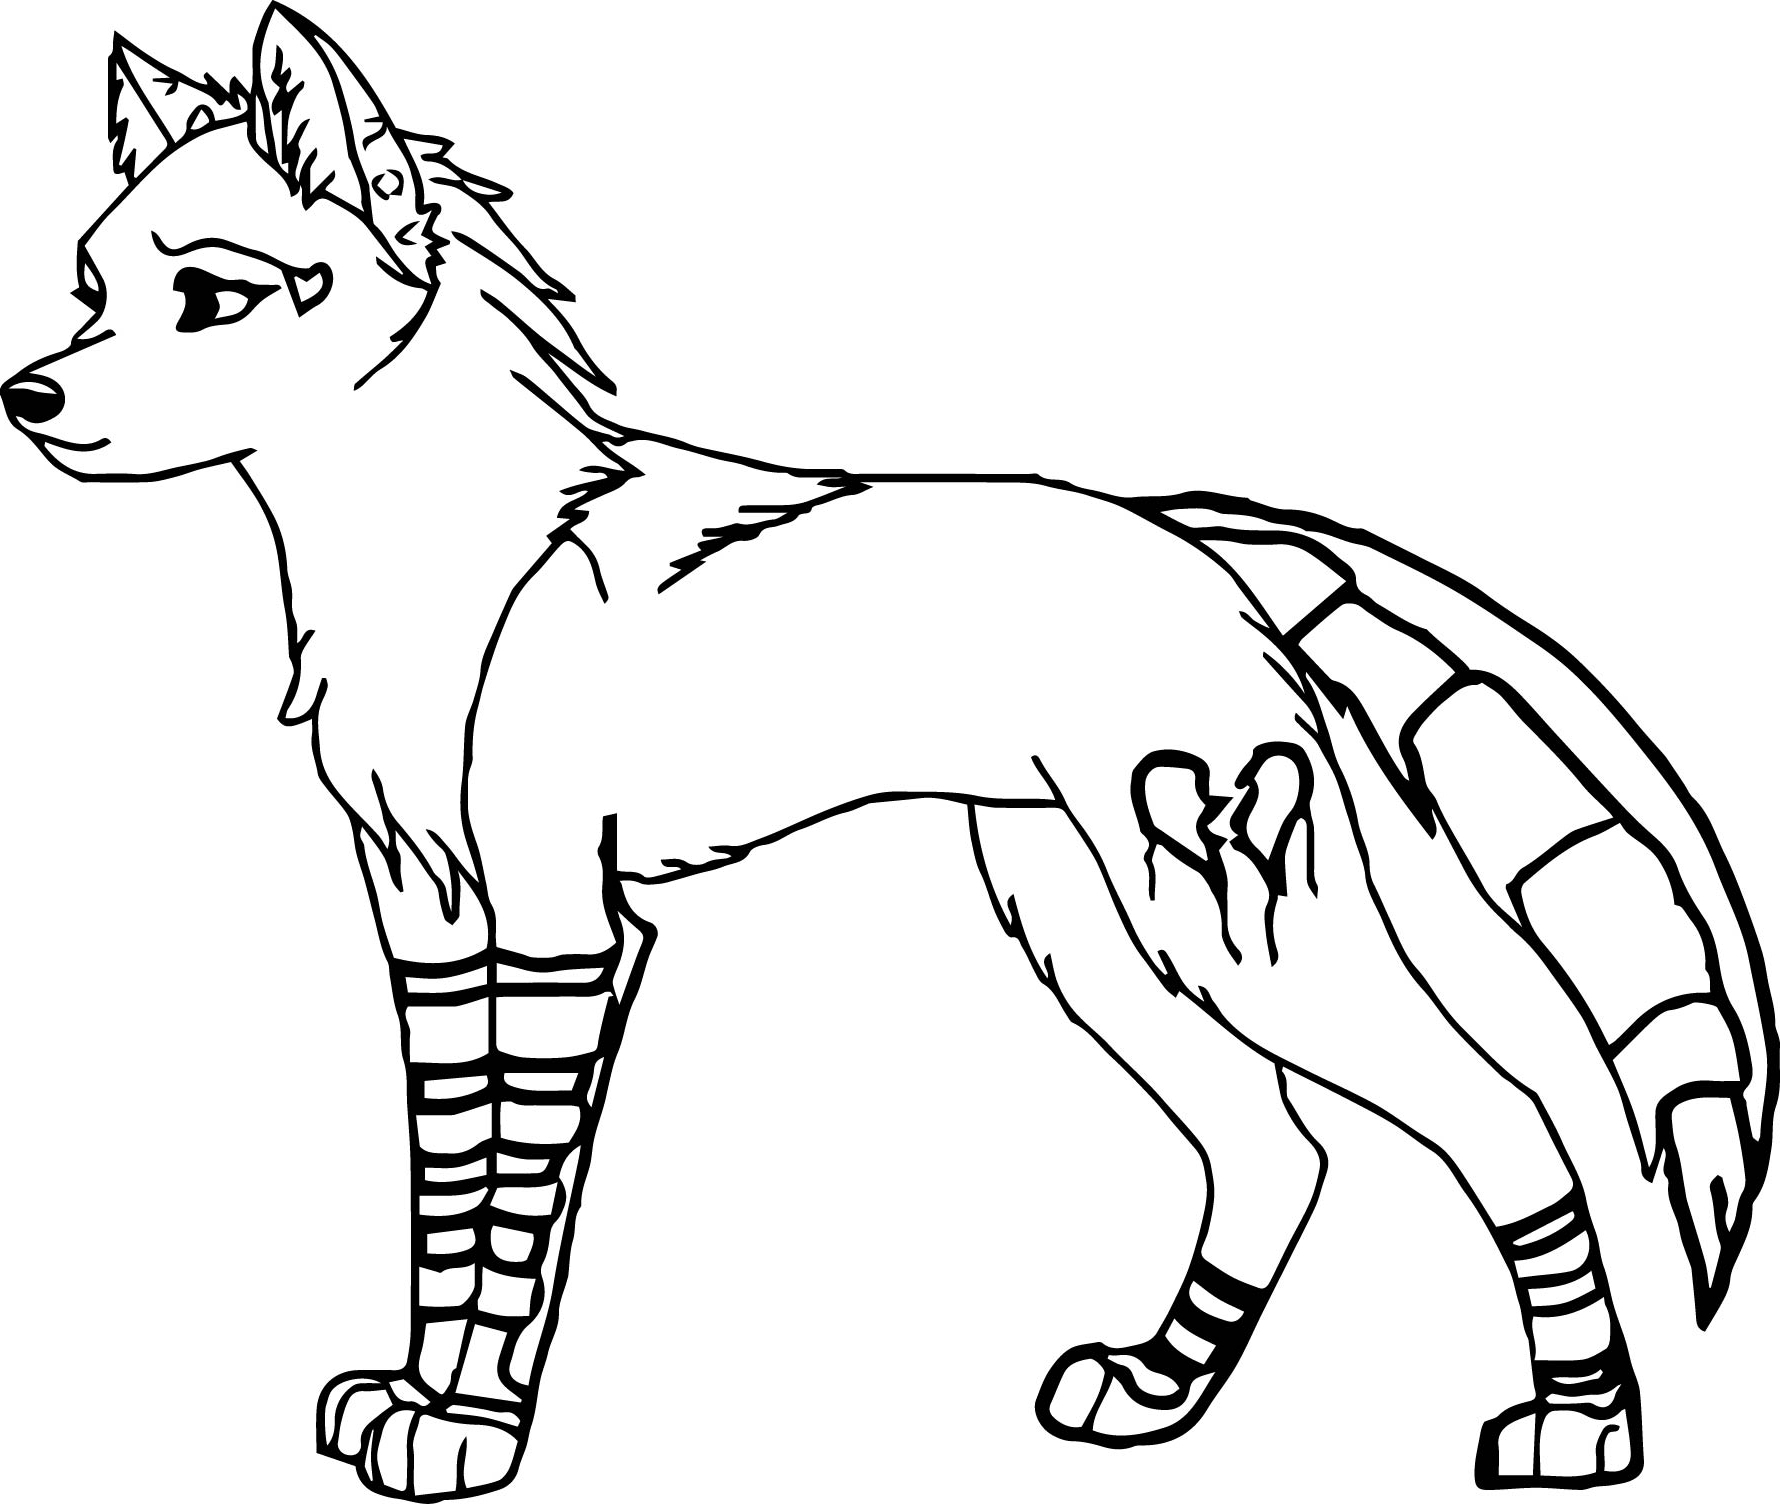 wolf pictures to color and print print download wolf coloring pages theme pictures color wolf and to print